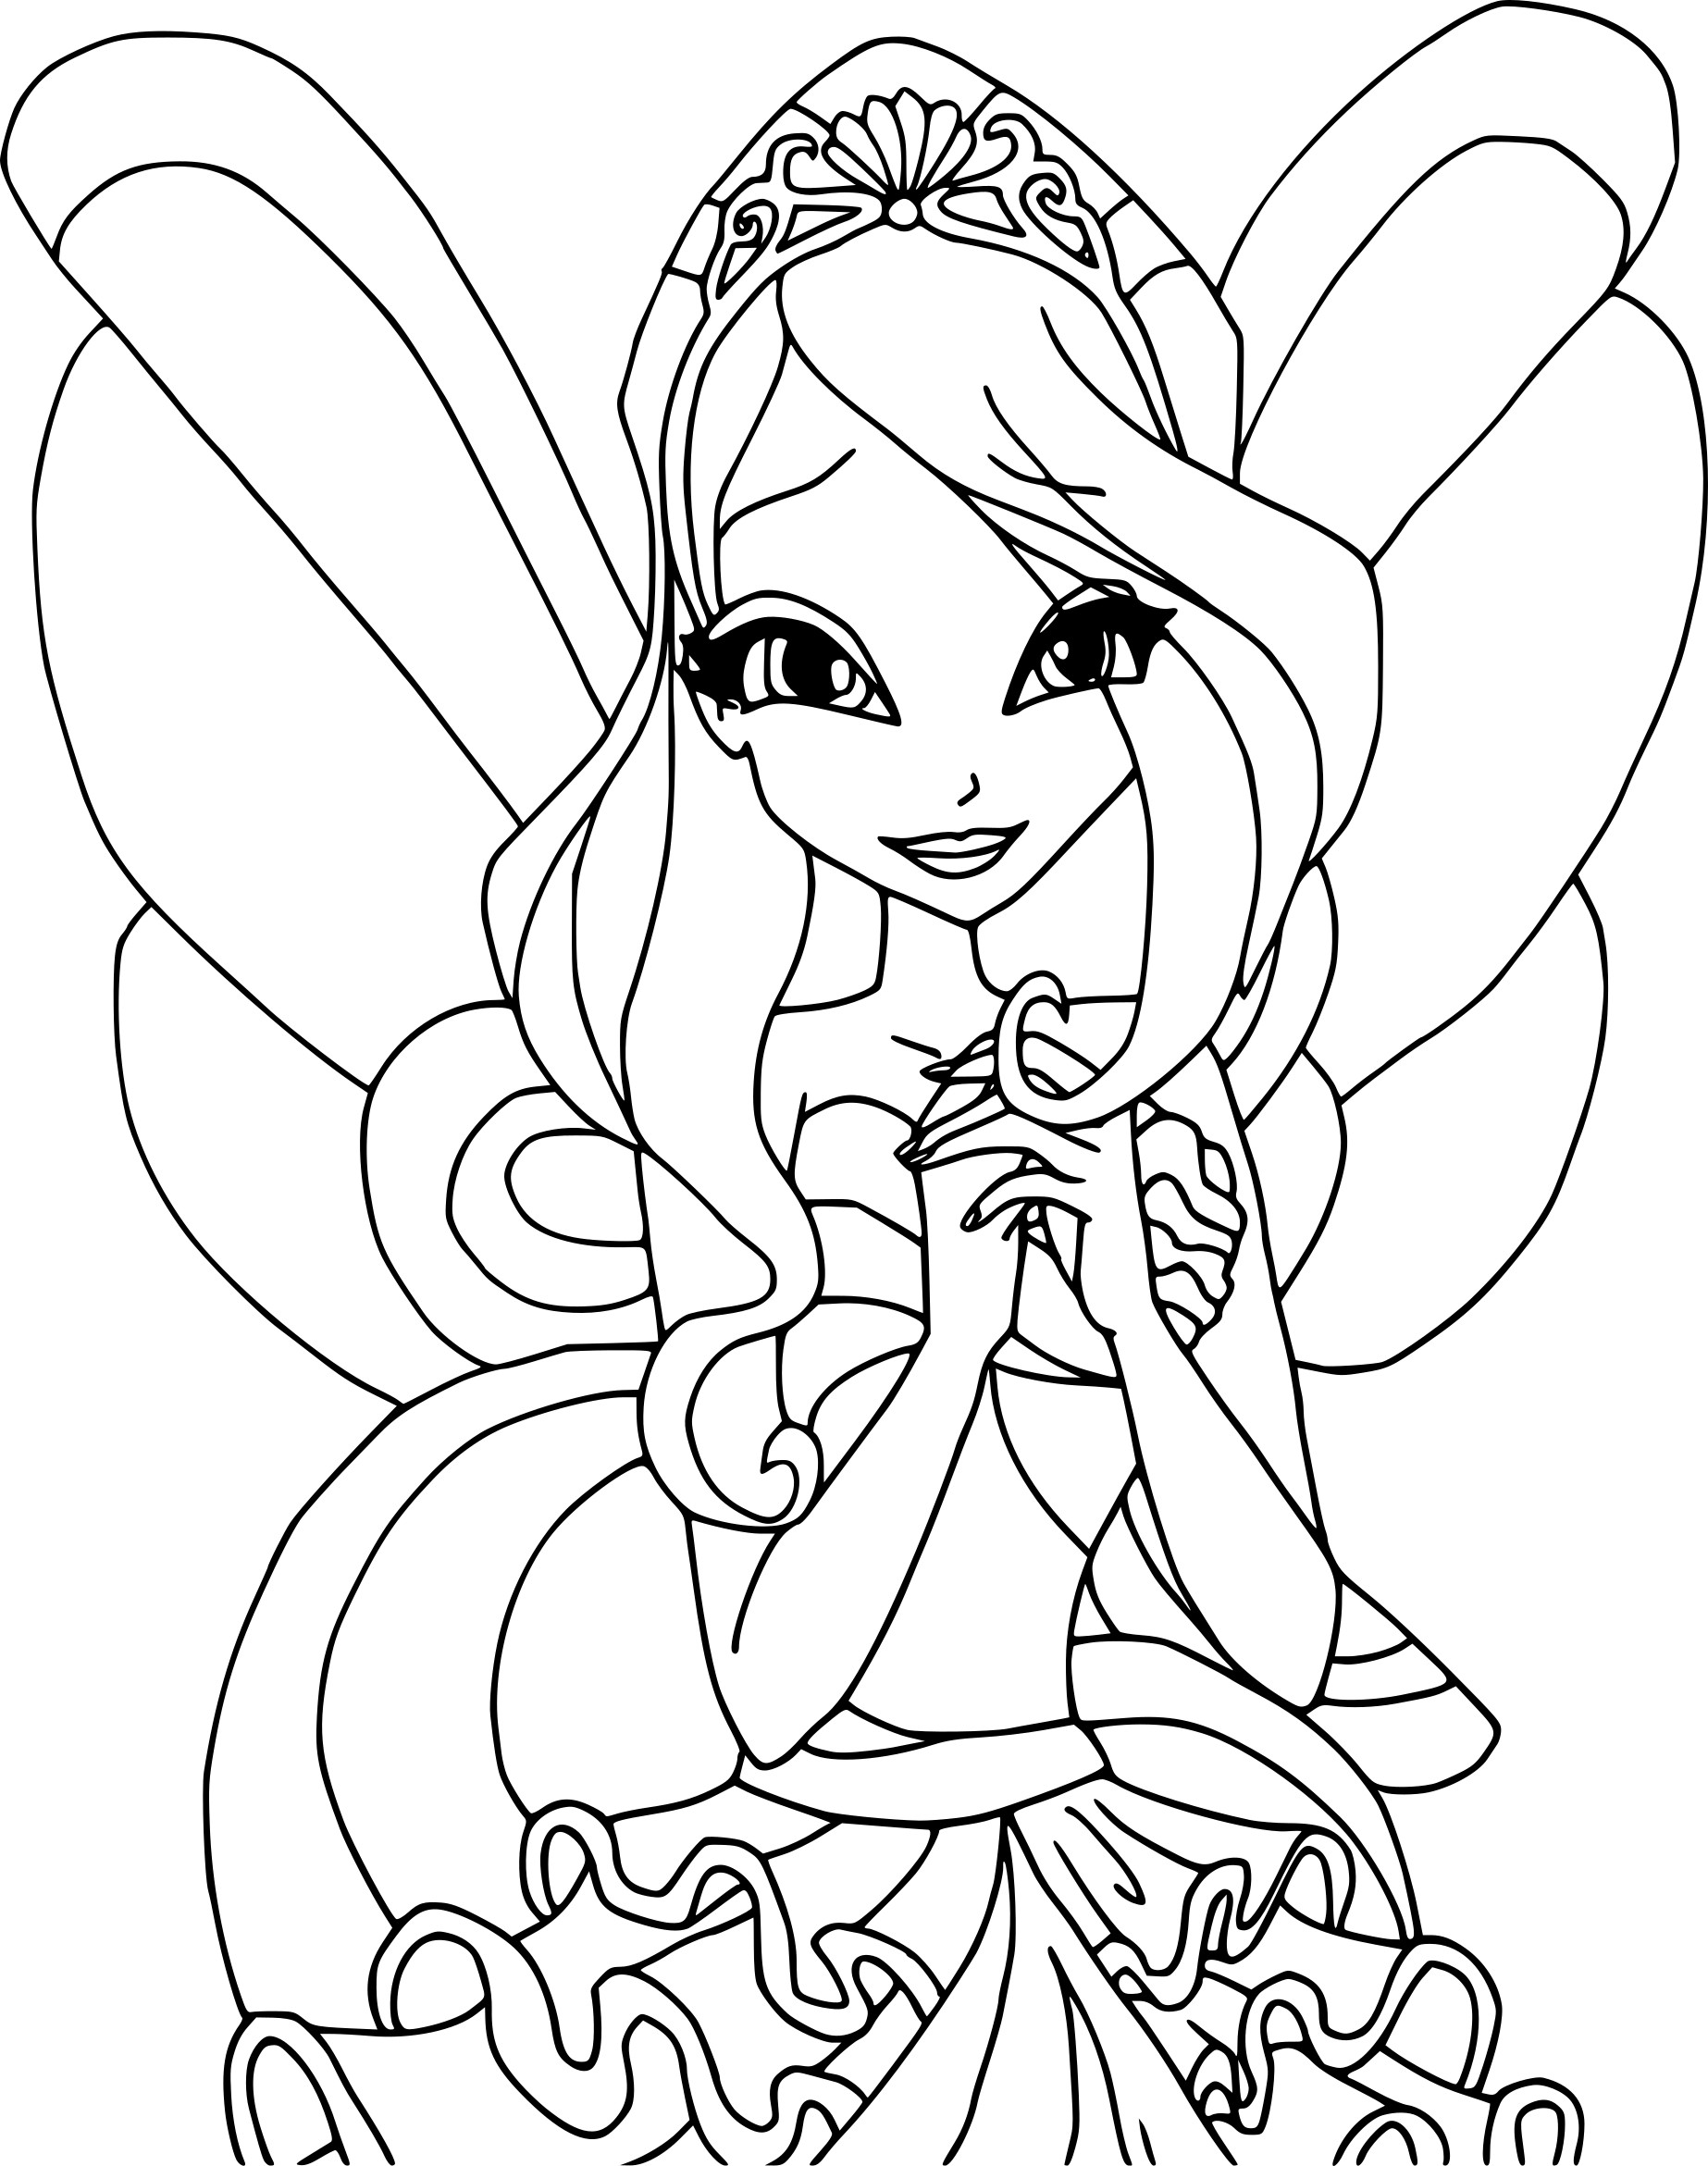 Coloriage winx bloom imprimer sur coloriages info - Coloriage winx bloom ...